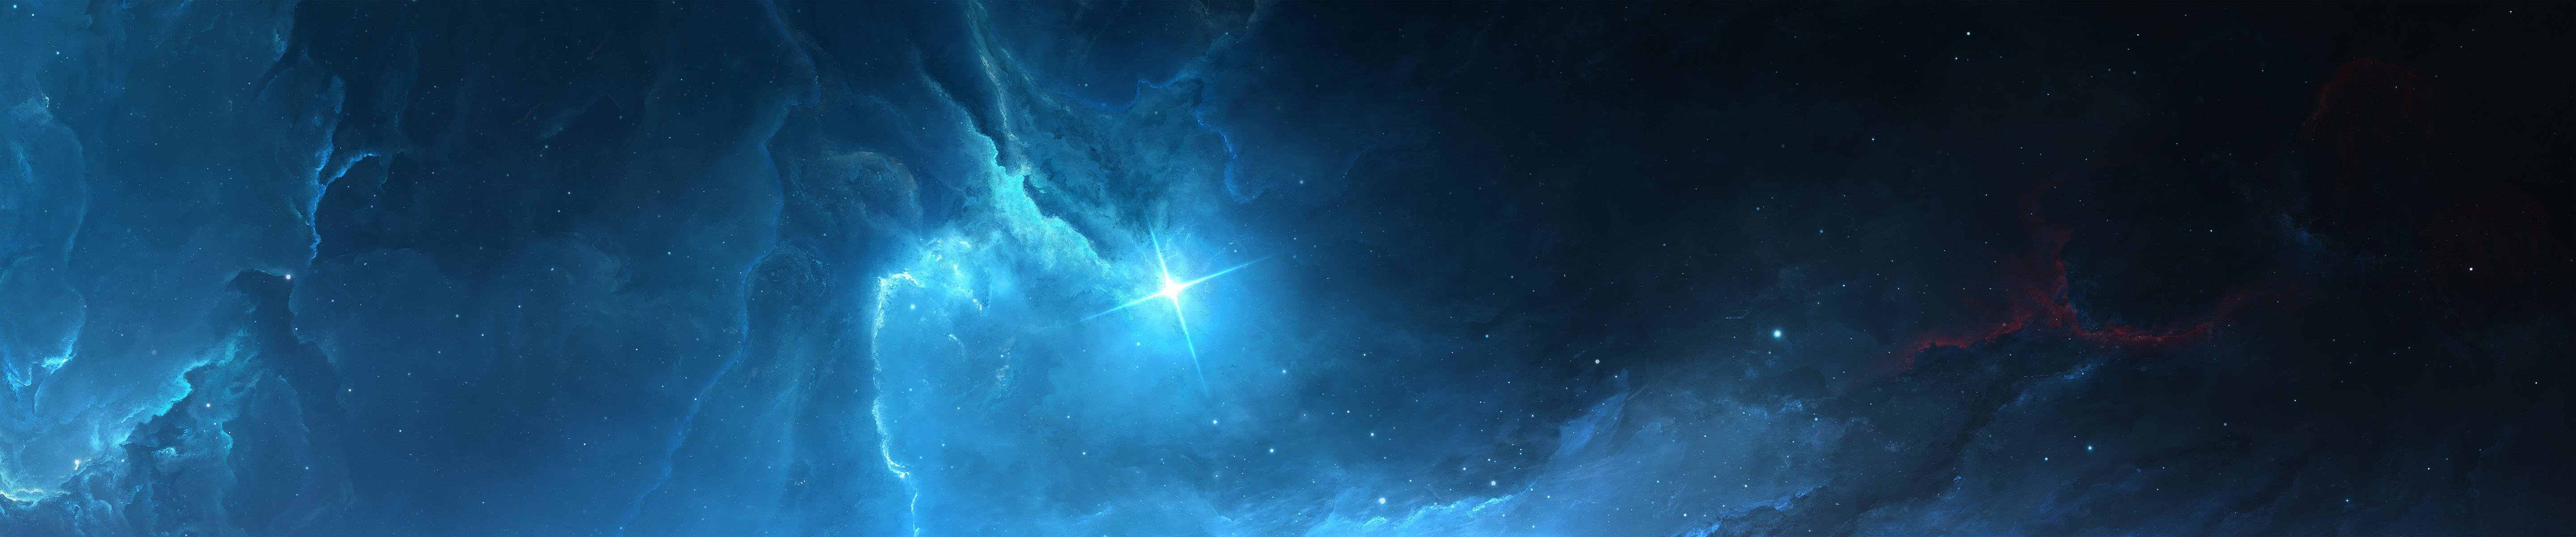 5760x1200 Wallpapers